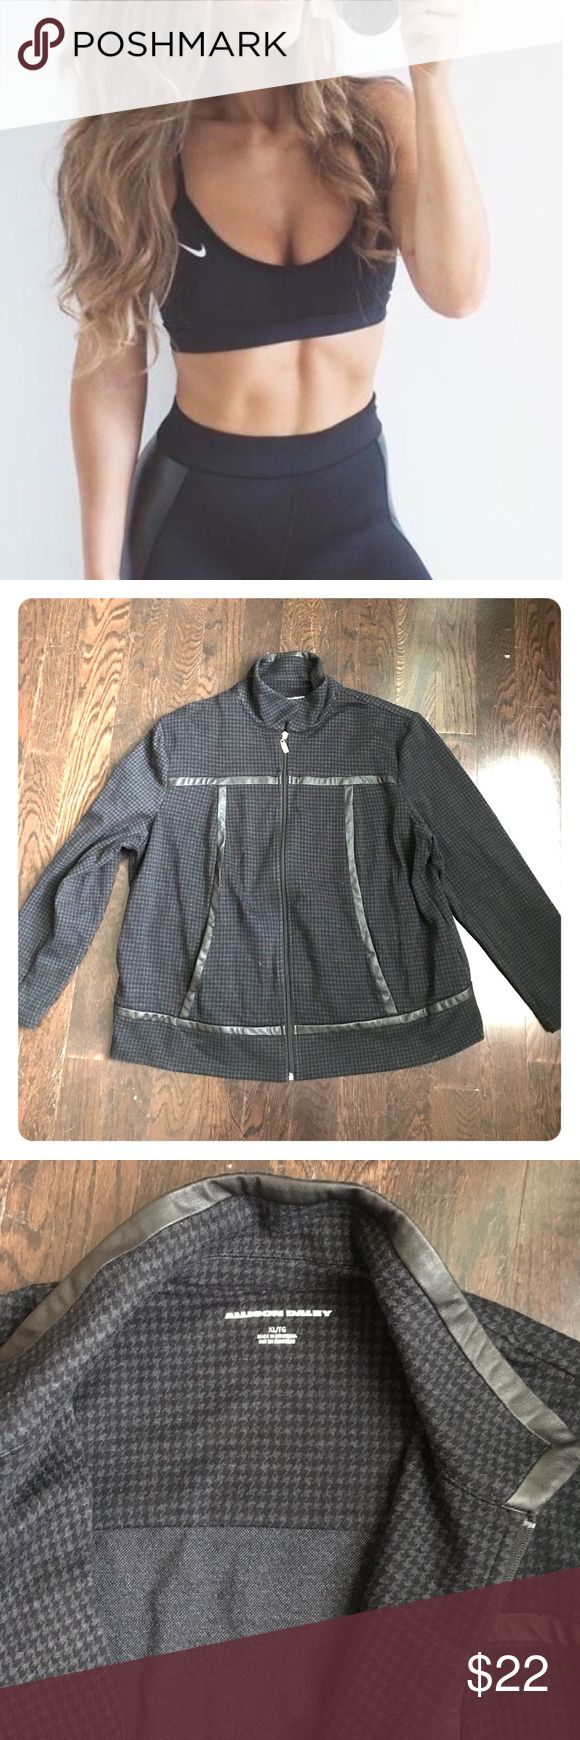 FAB FAUX LEATHER ATHLETIC ZIP UP ALLISON DALEY ATHLETIC WEAR/sz xl / silver zipper & hardware with black houndstooth print /faux leather trim/Nordstrom bought💕great condition Nordstrom Tops